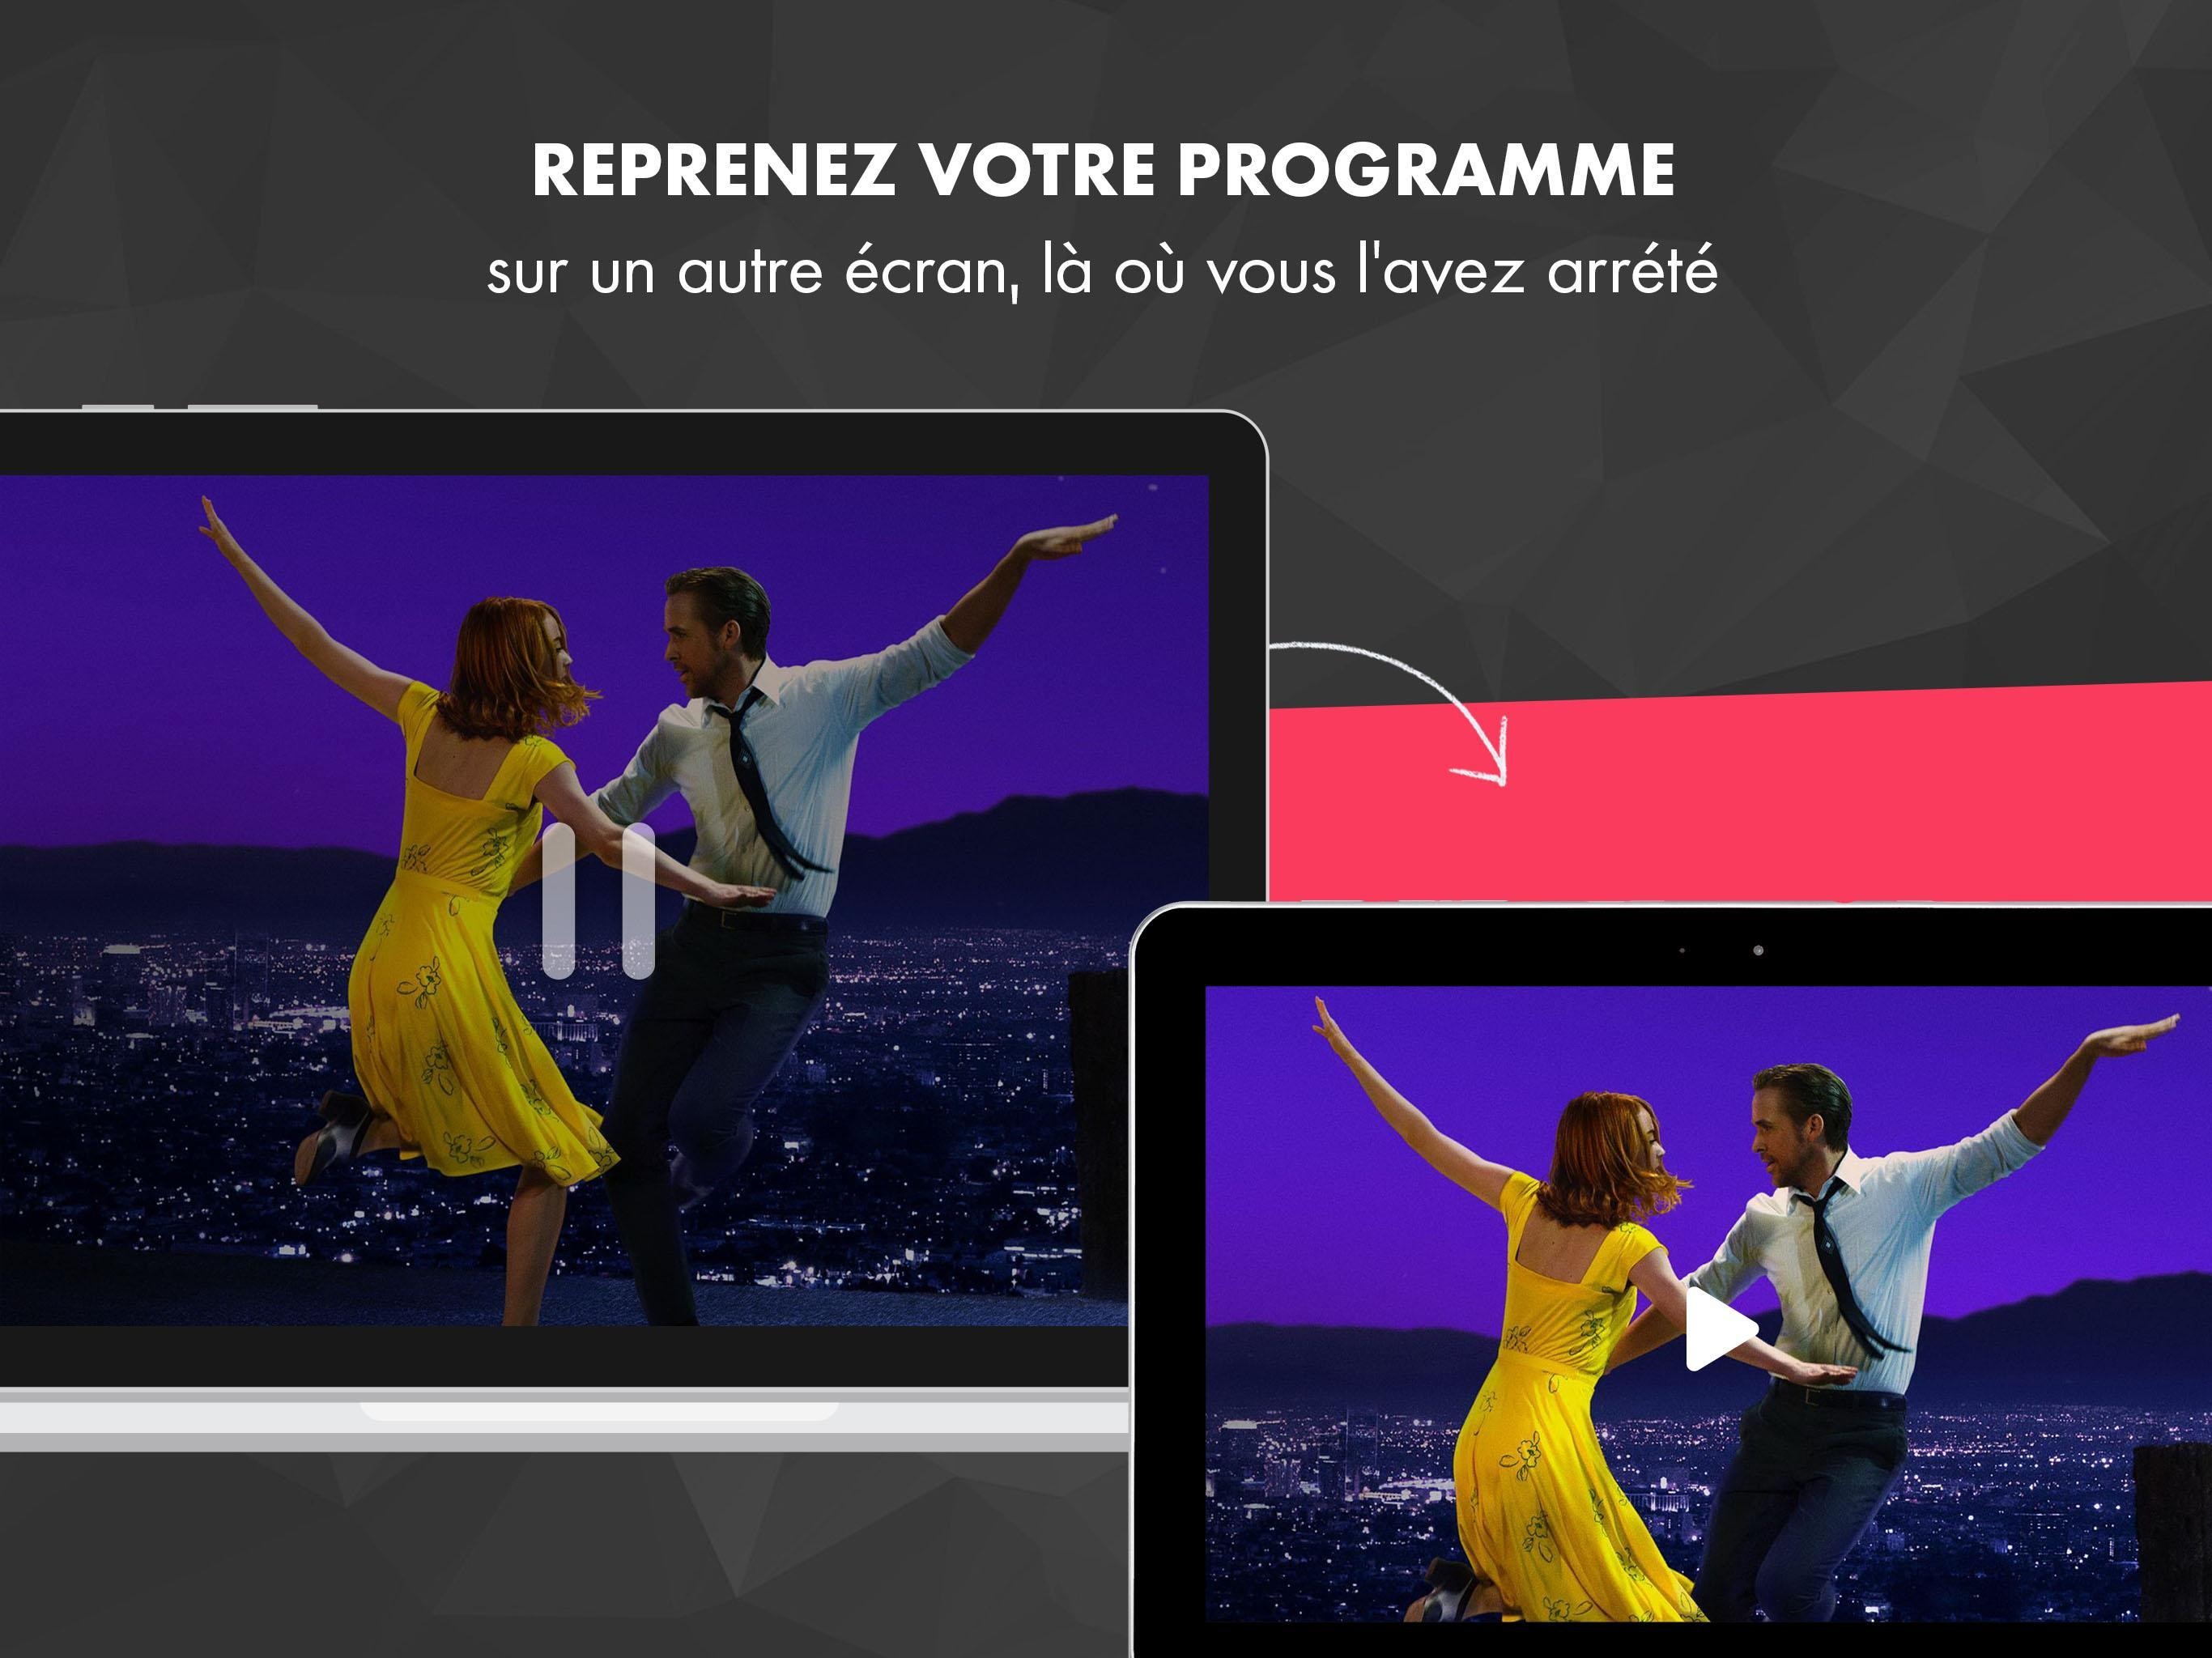 myCANAL, vos programmes en live ou en replay 4.4.2 Screenshot 13